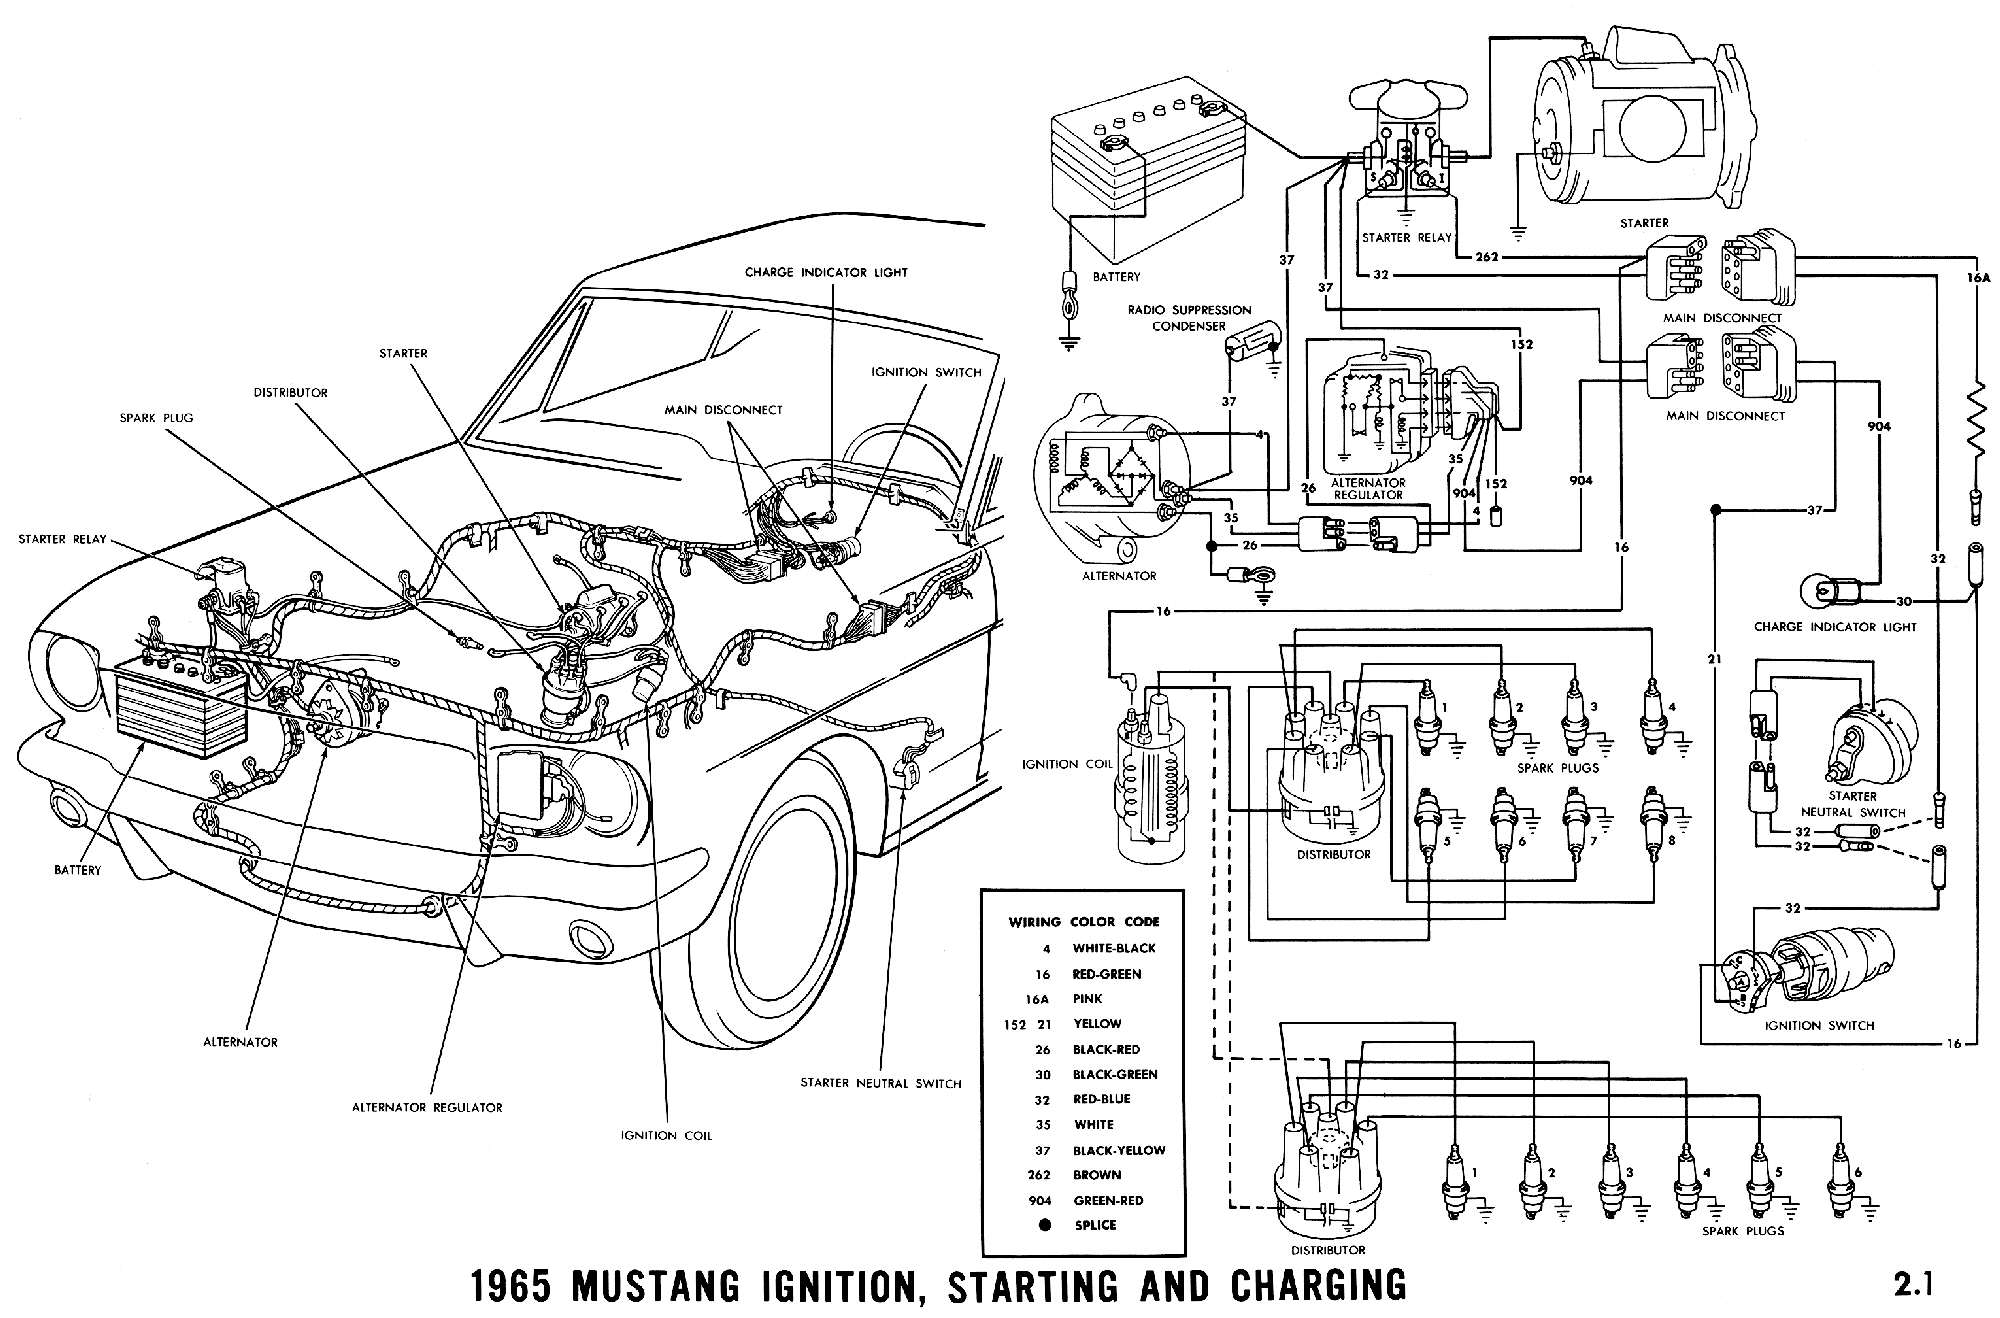 1965c 1965 mustang wiring diagrams average joe restoration 1968 mustang ignition switch wiring diagram at gsmx.co